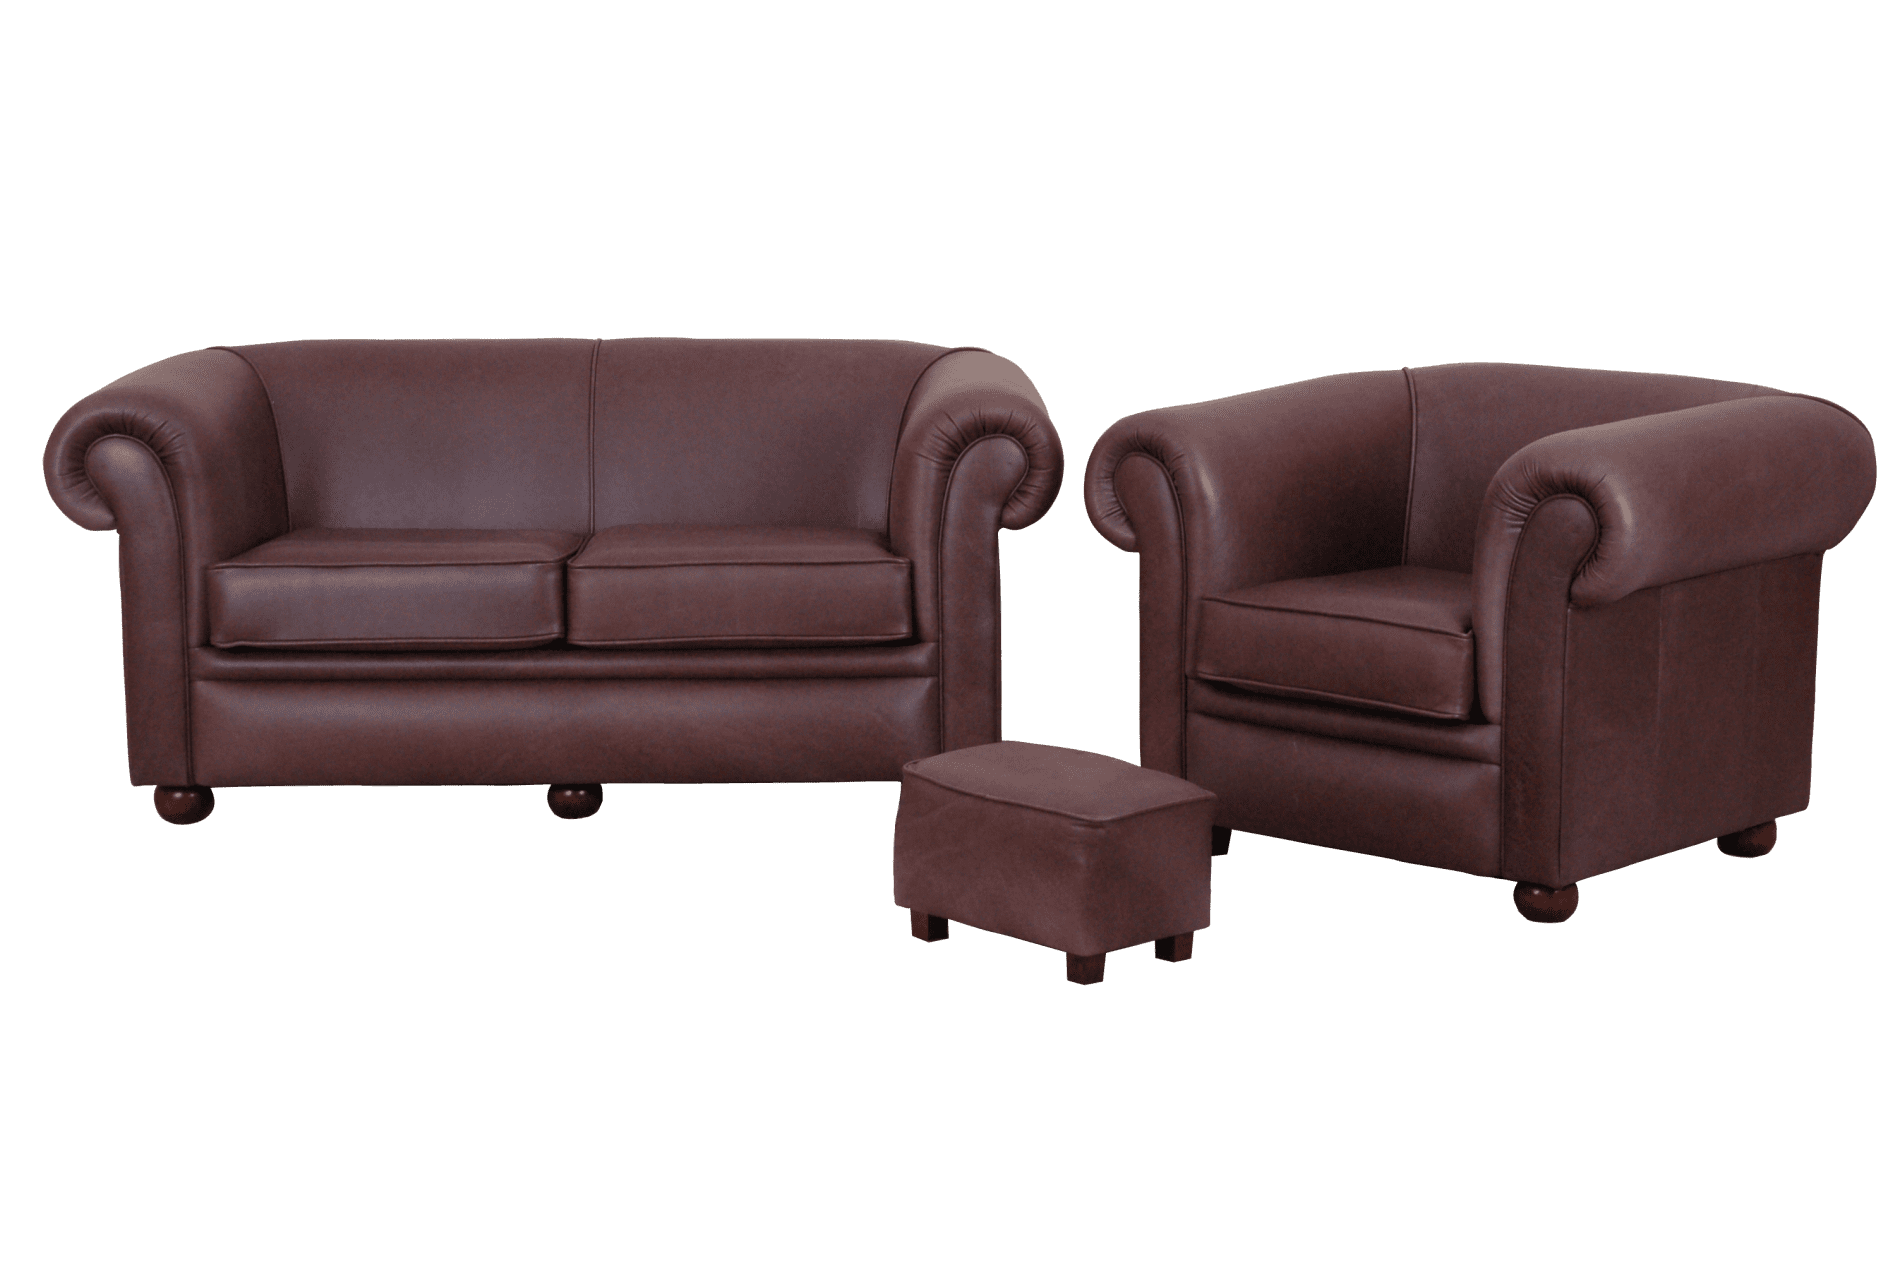 Nieuwe chesterfield Bolton 2,5-1-stool set in vintage leer